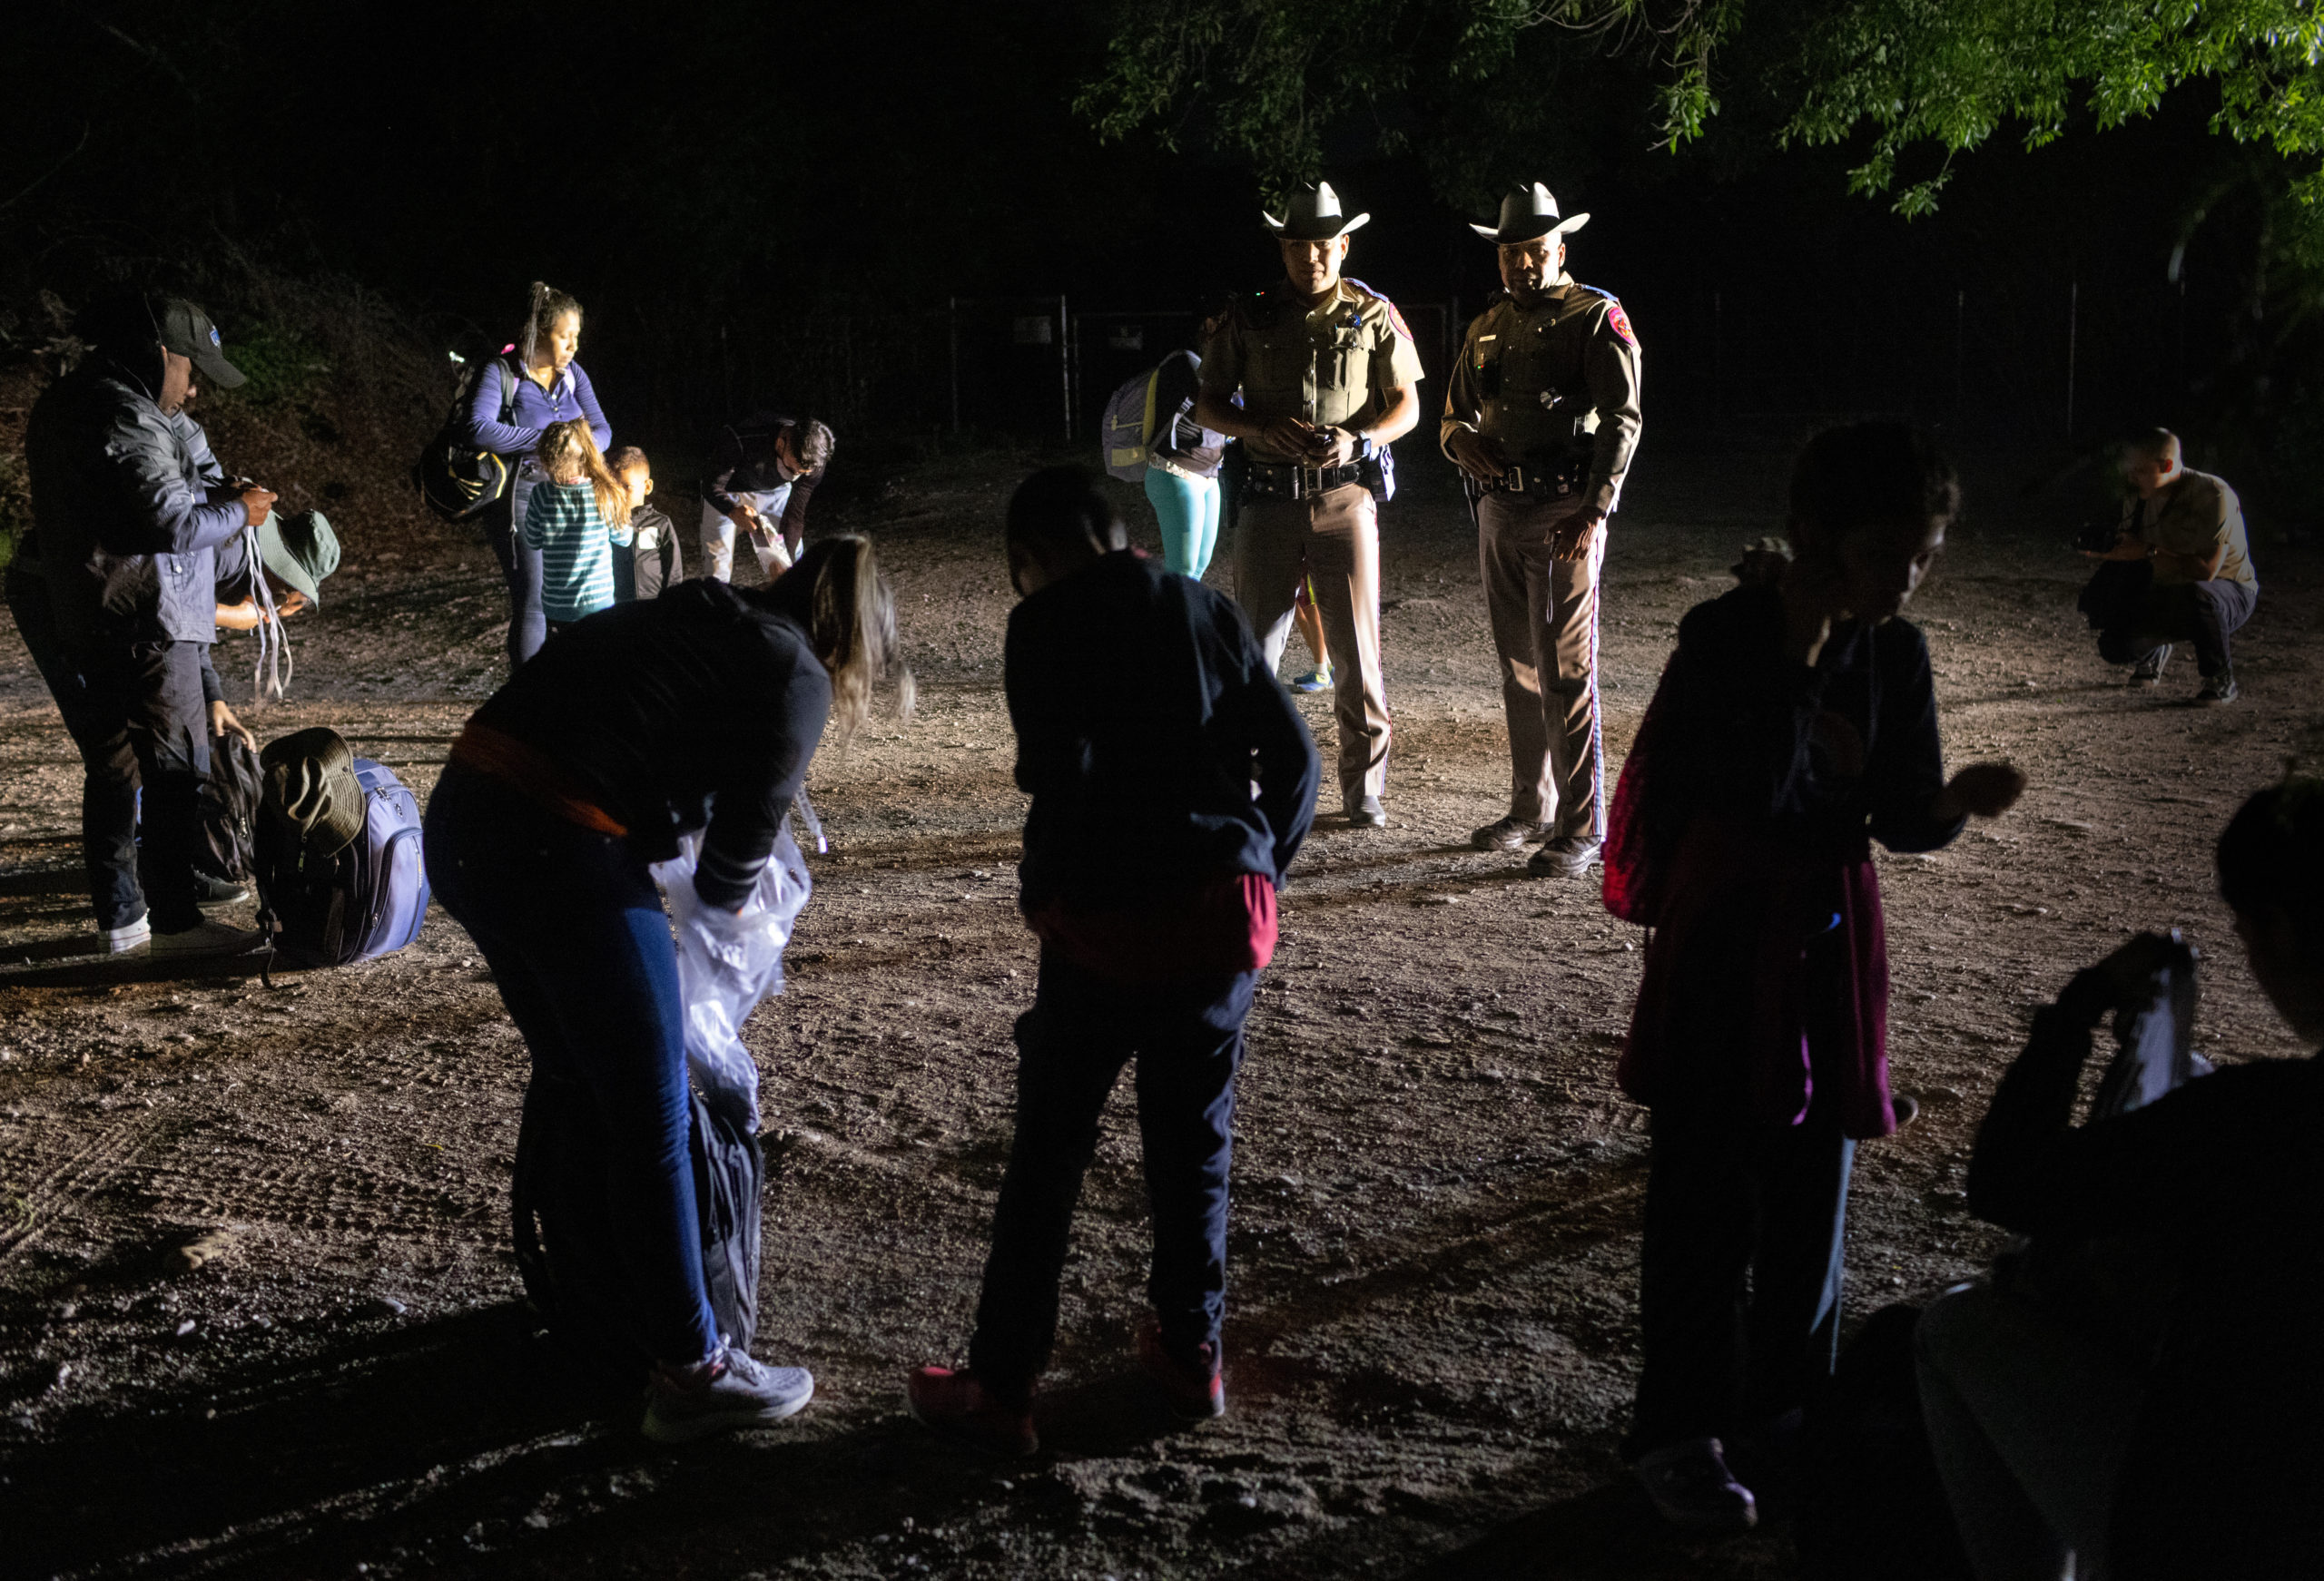 Texas state troopers watch over Venezuelan immigrants before they are taken into custody by U.S. Border Patrol agents on May 19, 2021 in Del Rio, Texas. (Photo by John Moore/Getty Images)